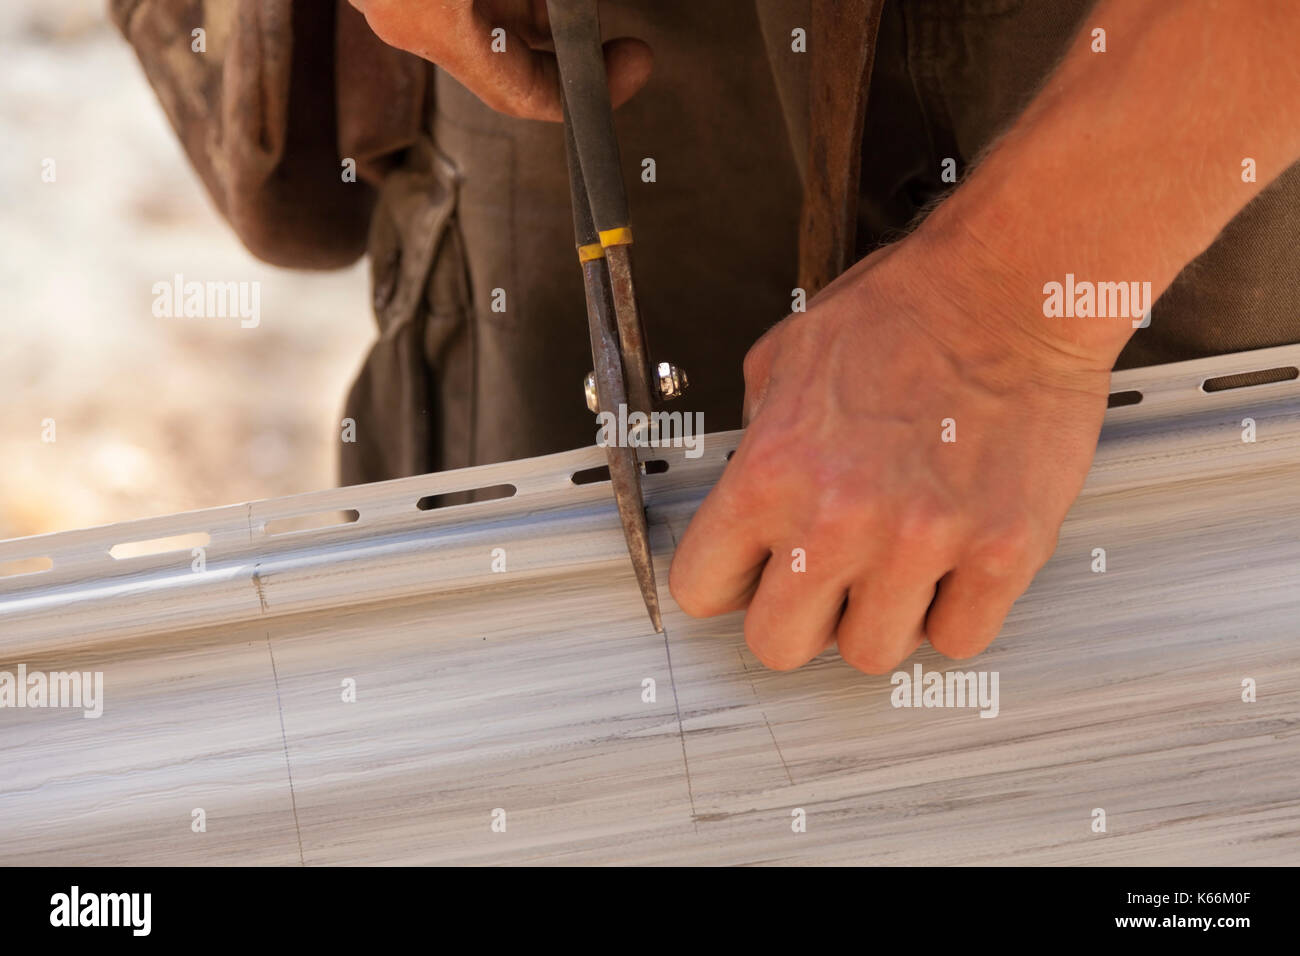 A construction worker cutting through vinyl siding using heavy duty shears in Ontario, Canada. - Stock Image